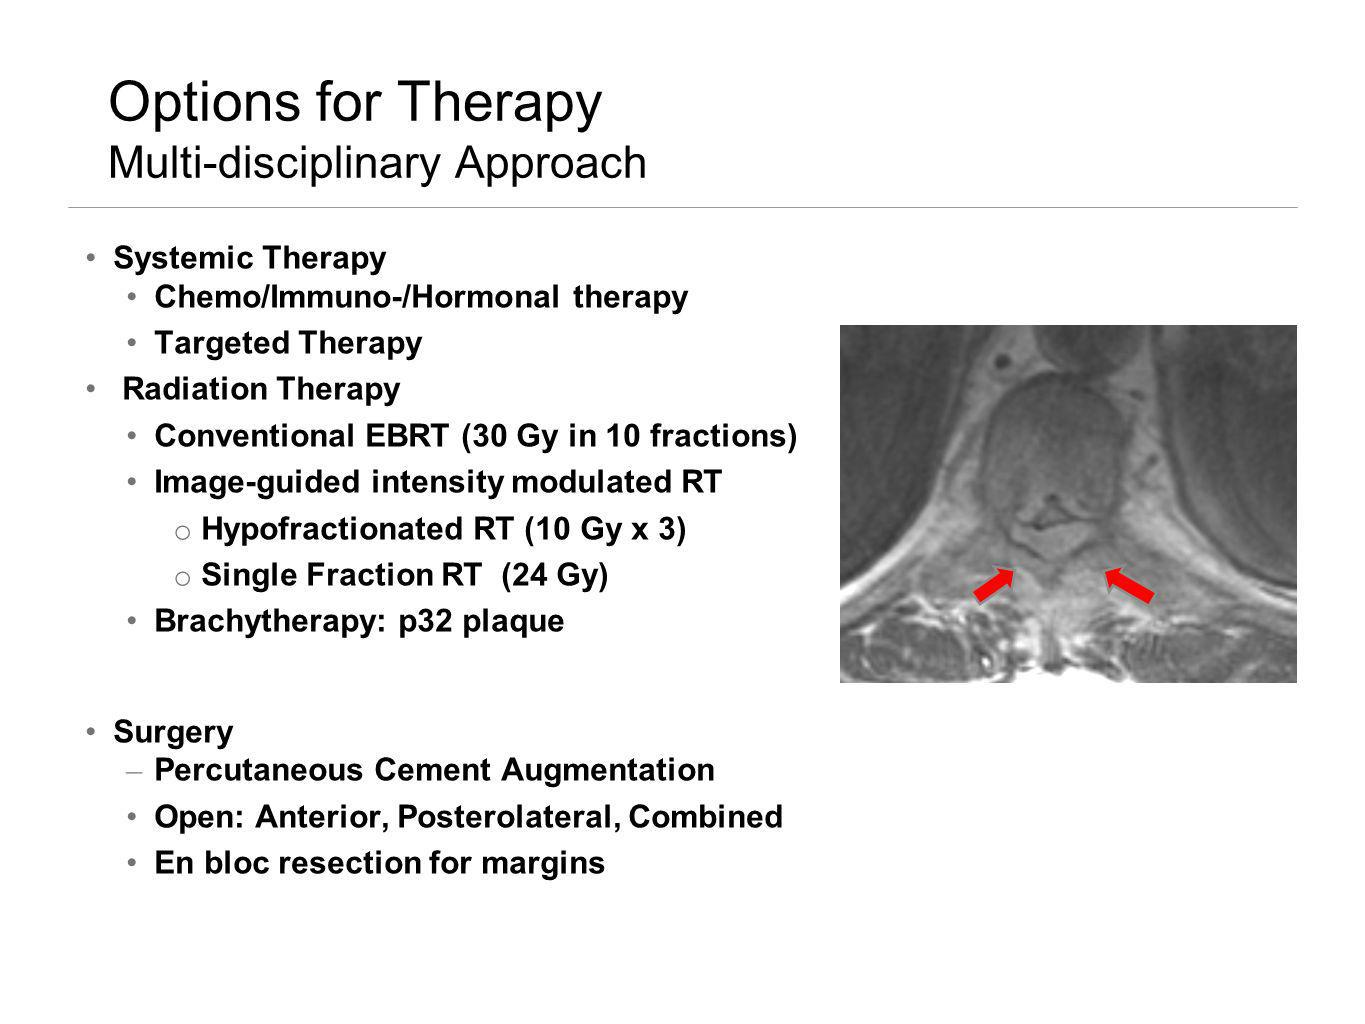 Options for Therapy Multi-disciplinary Approach Systemic Therapy Chemo/Immuno-/Hormonal therapy Targeted Therapy Radiation Therapy Conventional EBRT (